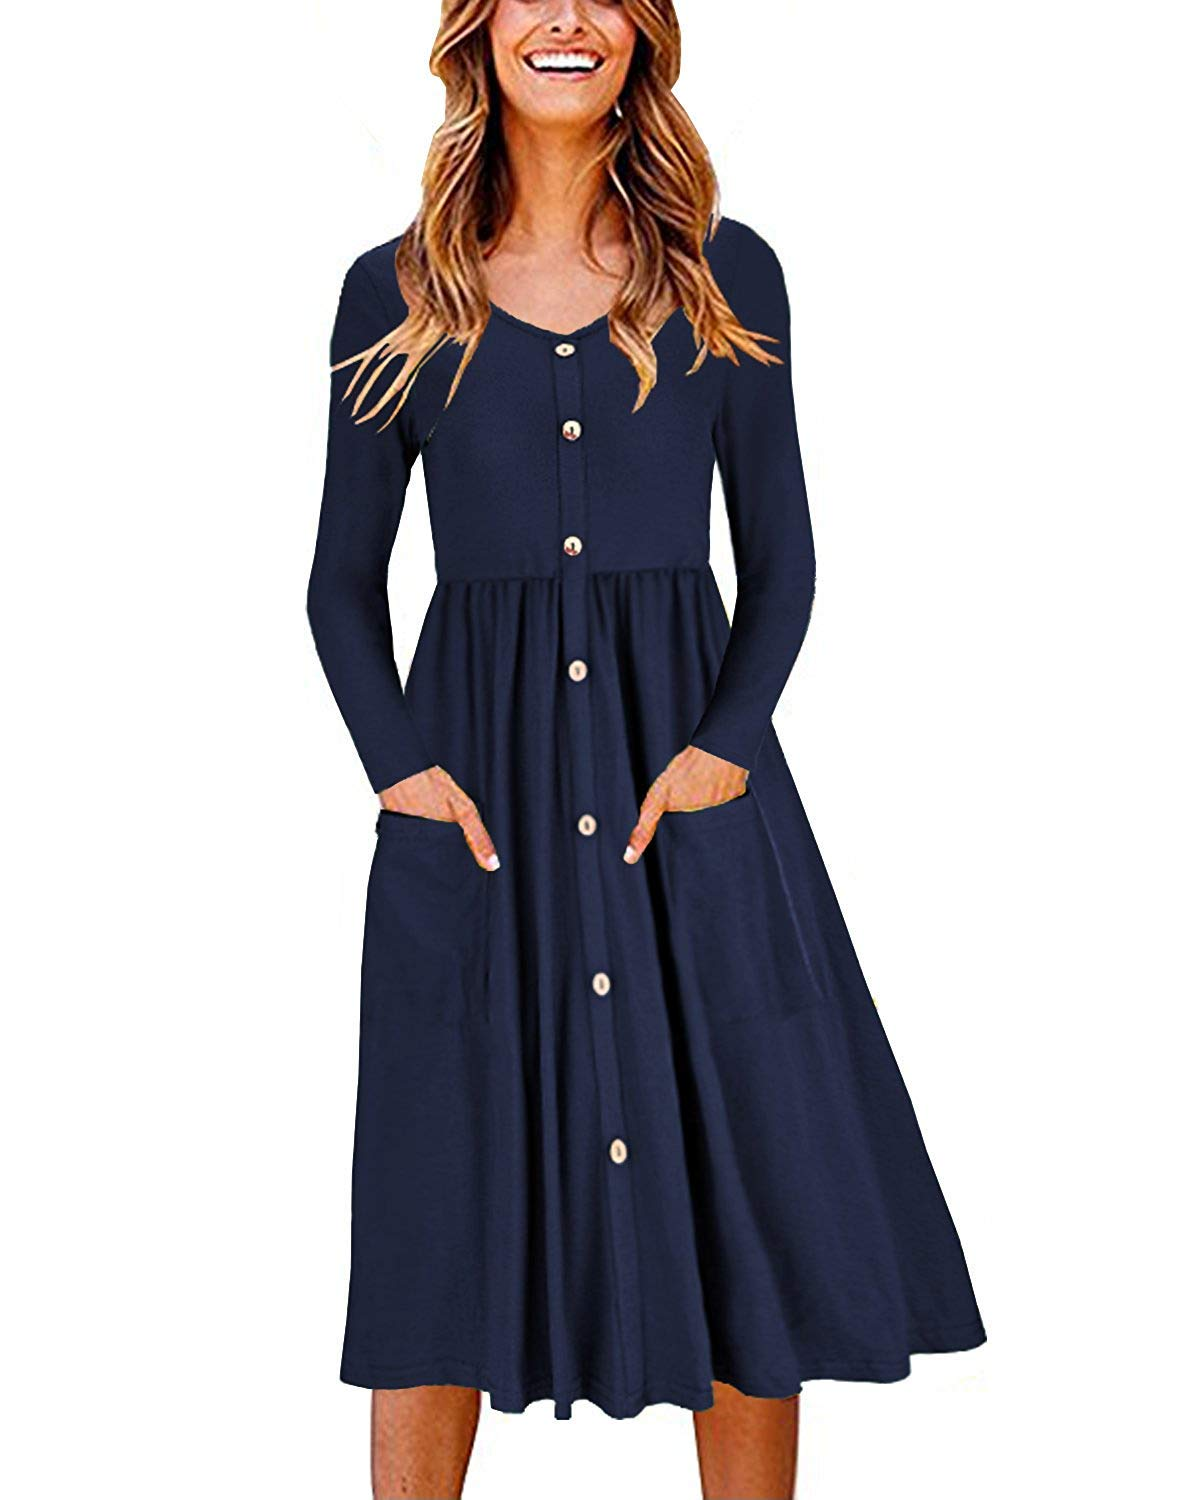 LAMISSCHE Womens Summer Casual Short Sleeve V Neck Button Down A-line Dress with Pockets(Navy Blue-Long Sleeve,S) by LAMISSCHE